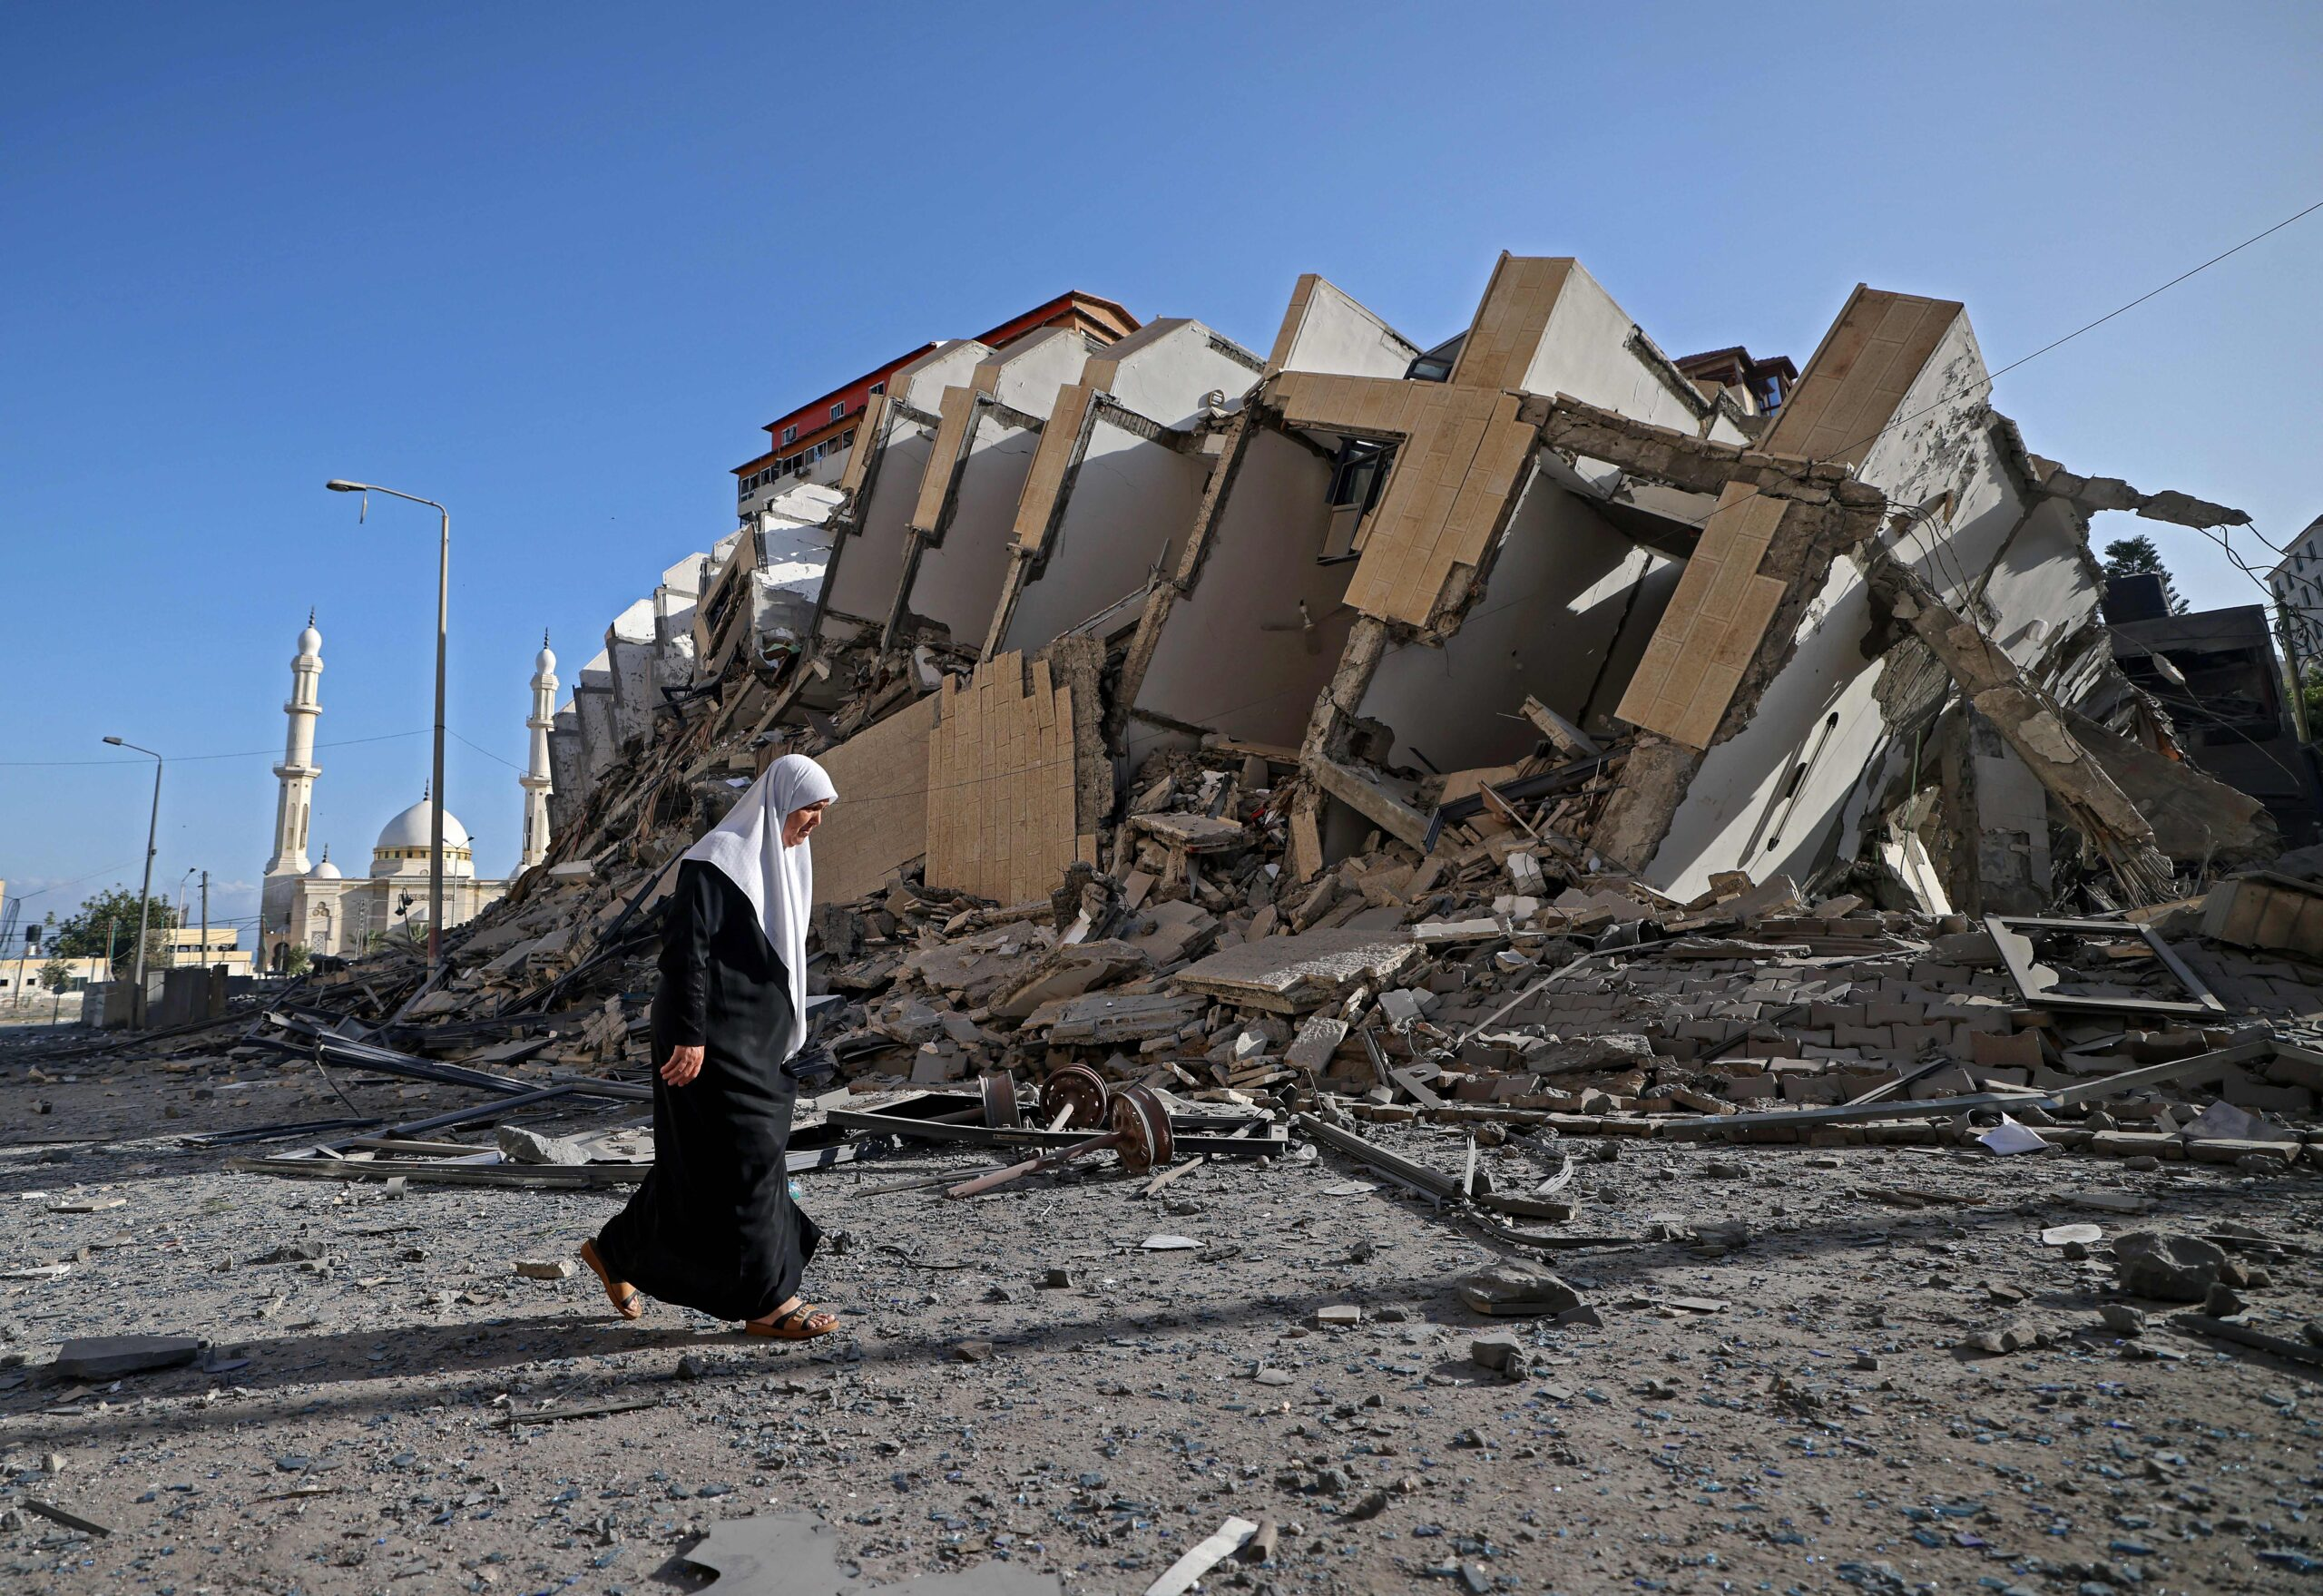 Israel/ OPT: Pattern of Israeli attacks on residential homes in Gaza must be investigated as war crimes